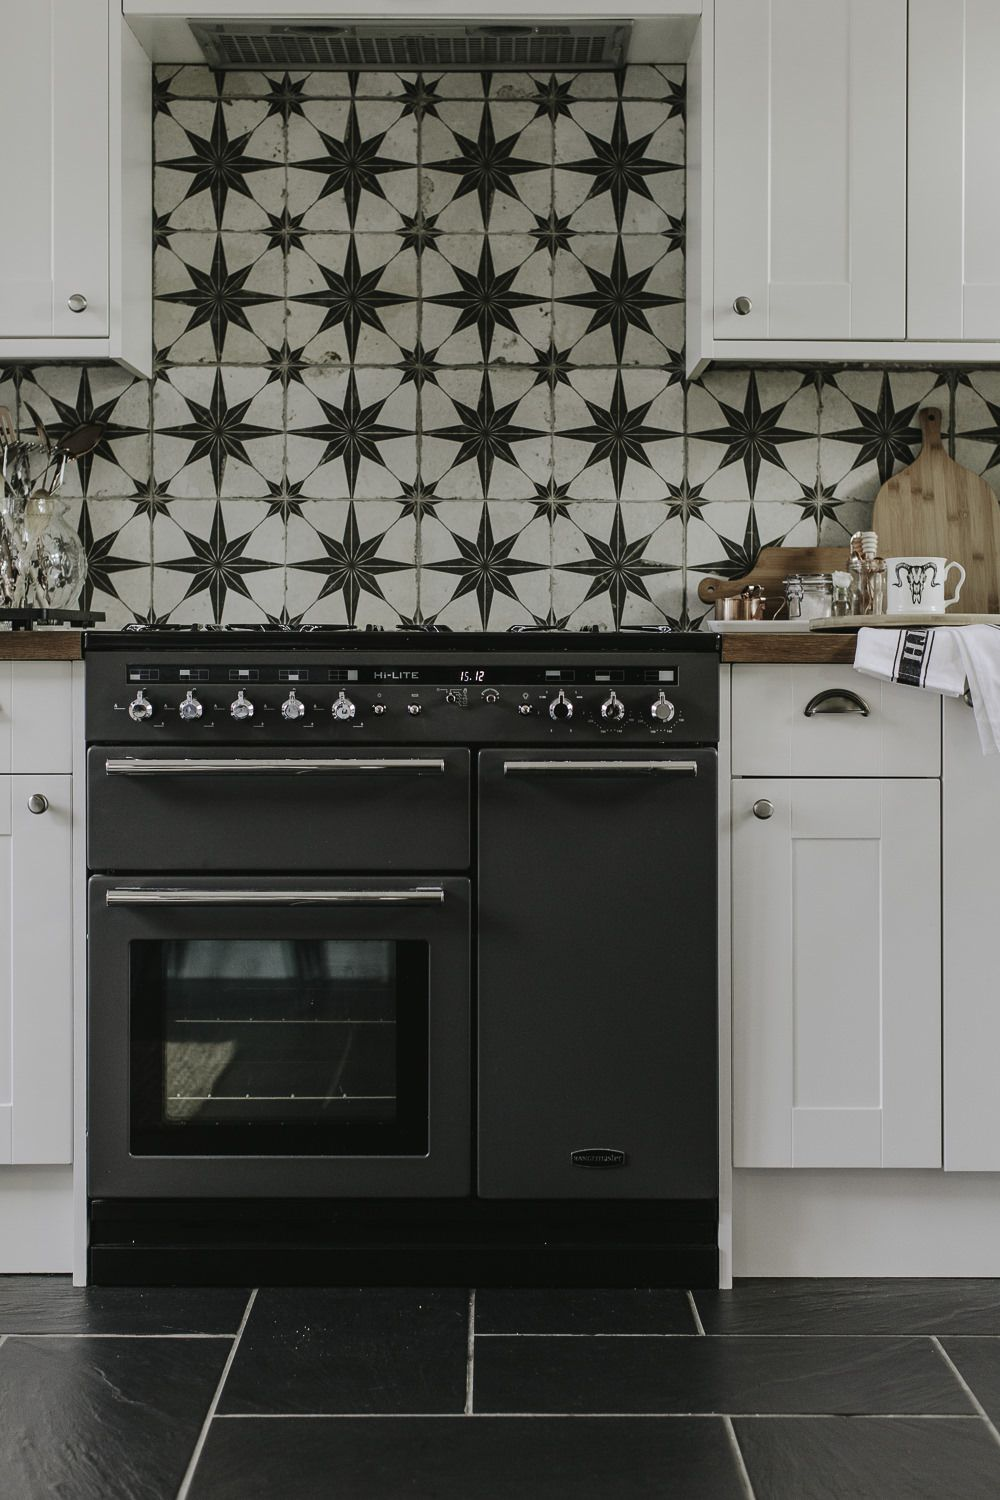 Updating A Large Kitchen On A Small Budget Rock My Style Uk Daily Lifestyle Blog In 2020 Simple Kitchen Kitchen On A Budget Range Cooker